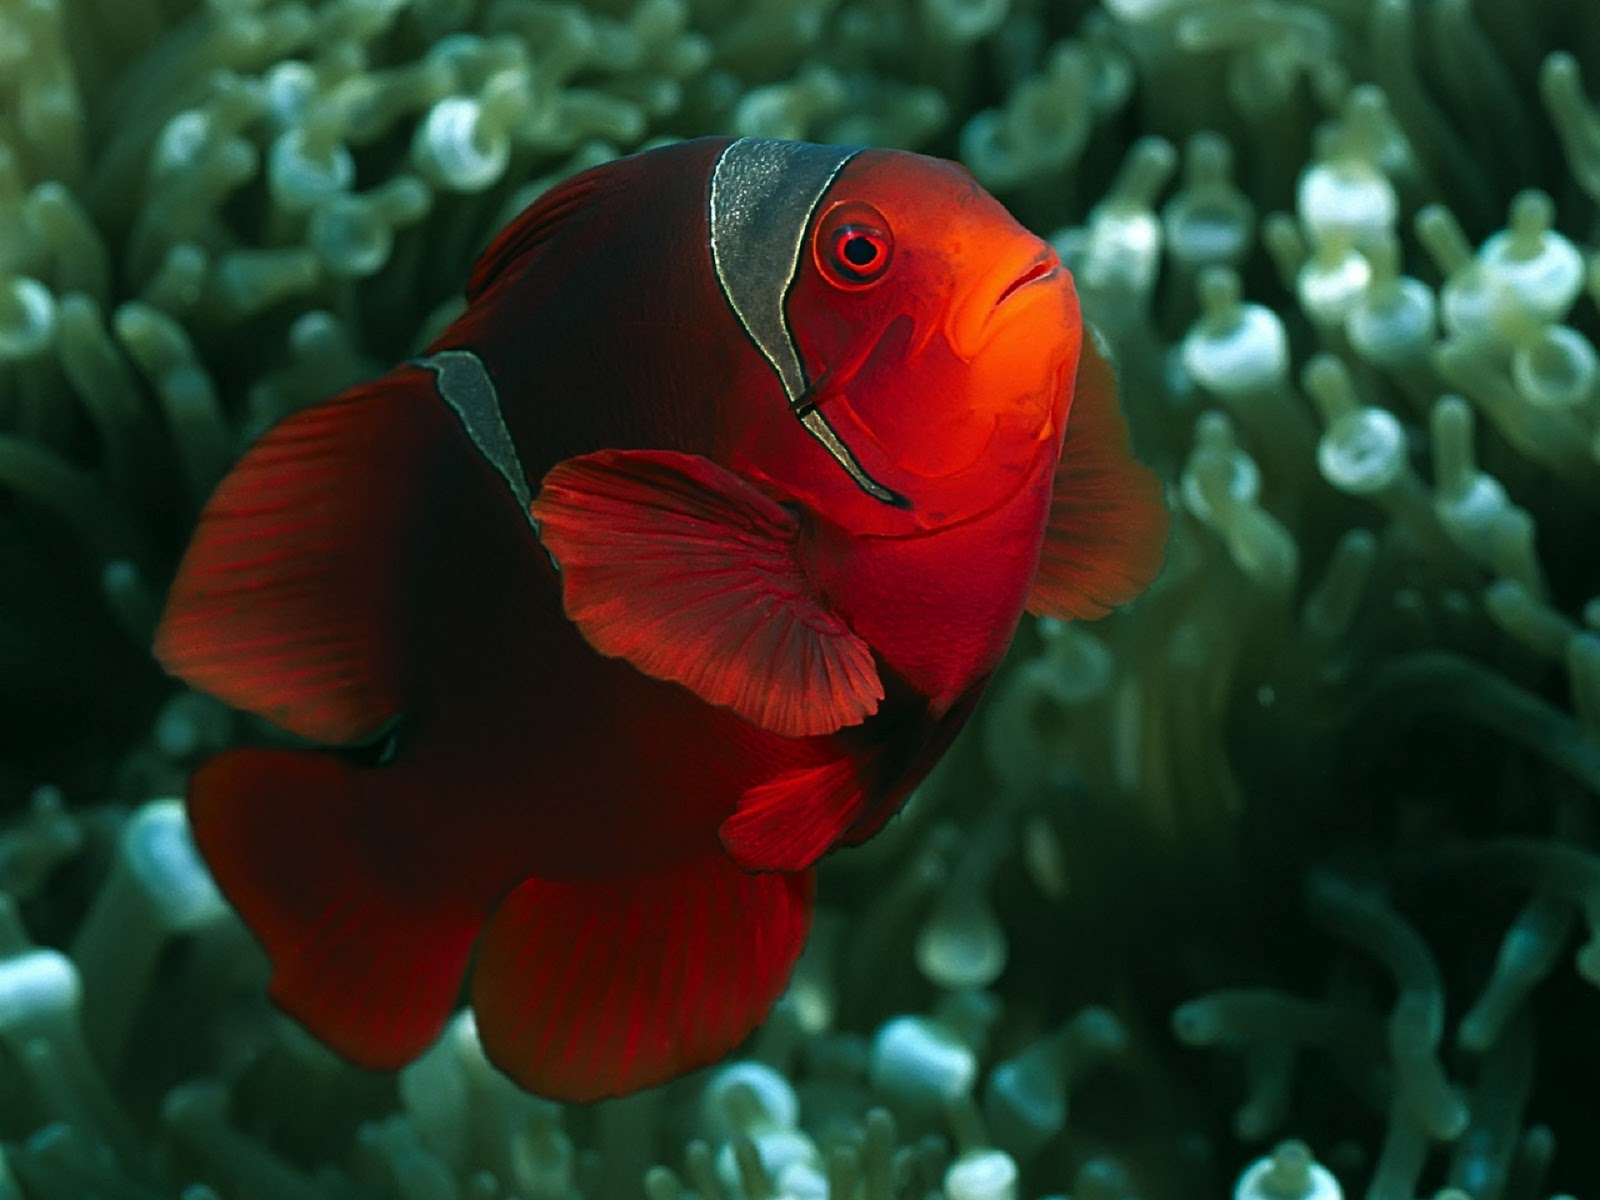 Clown fish Wallpapers | Fun Animals Wiki, Videos, Pictures ...